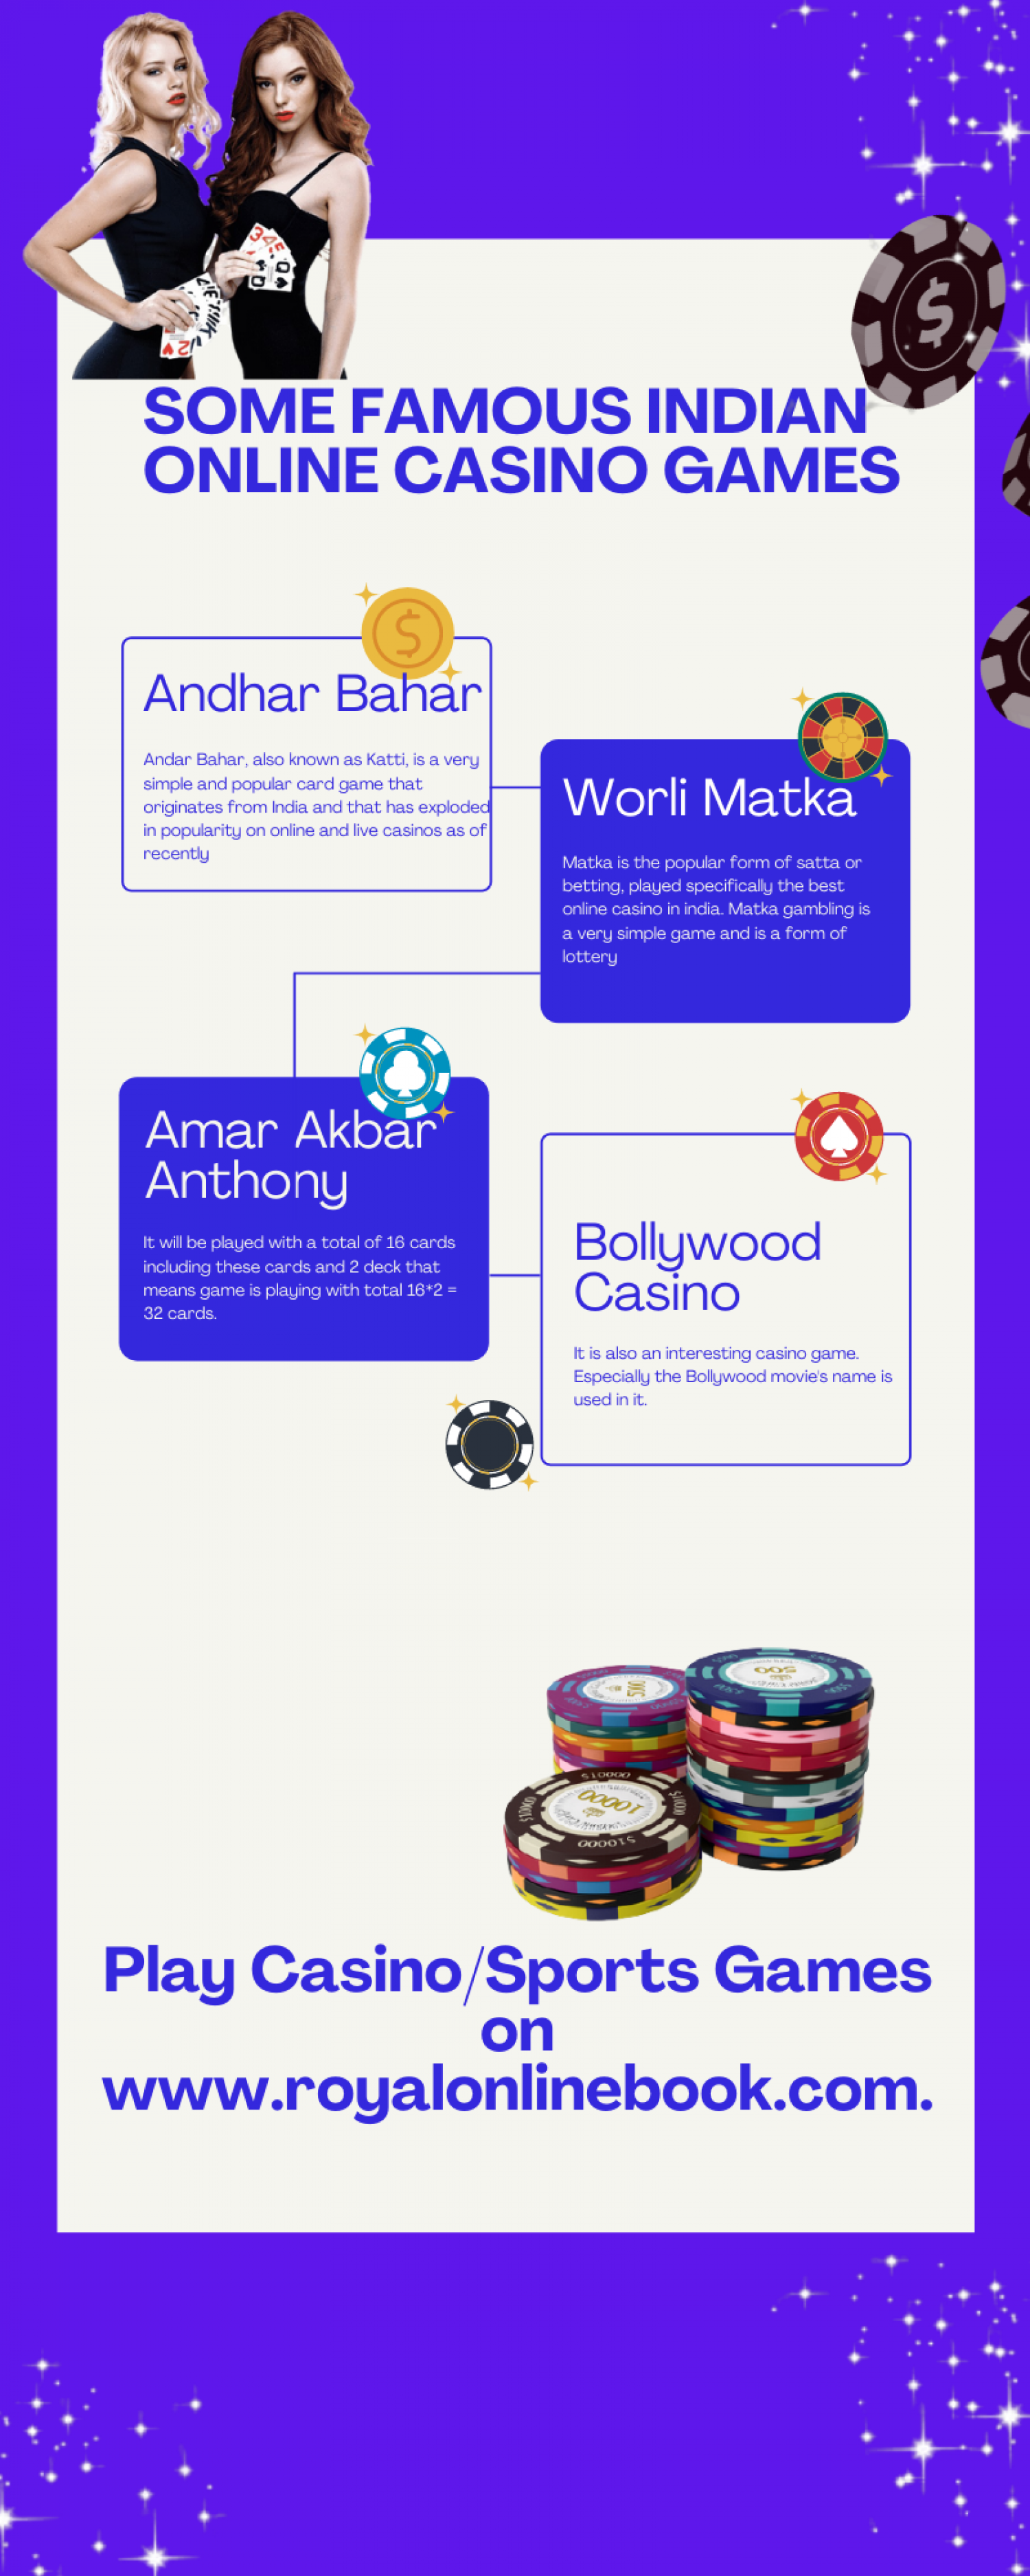 SOME FAMOUS INDIAN ONLINE CASINO GAMES Infographic